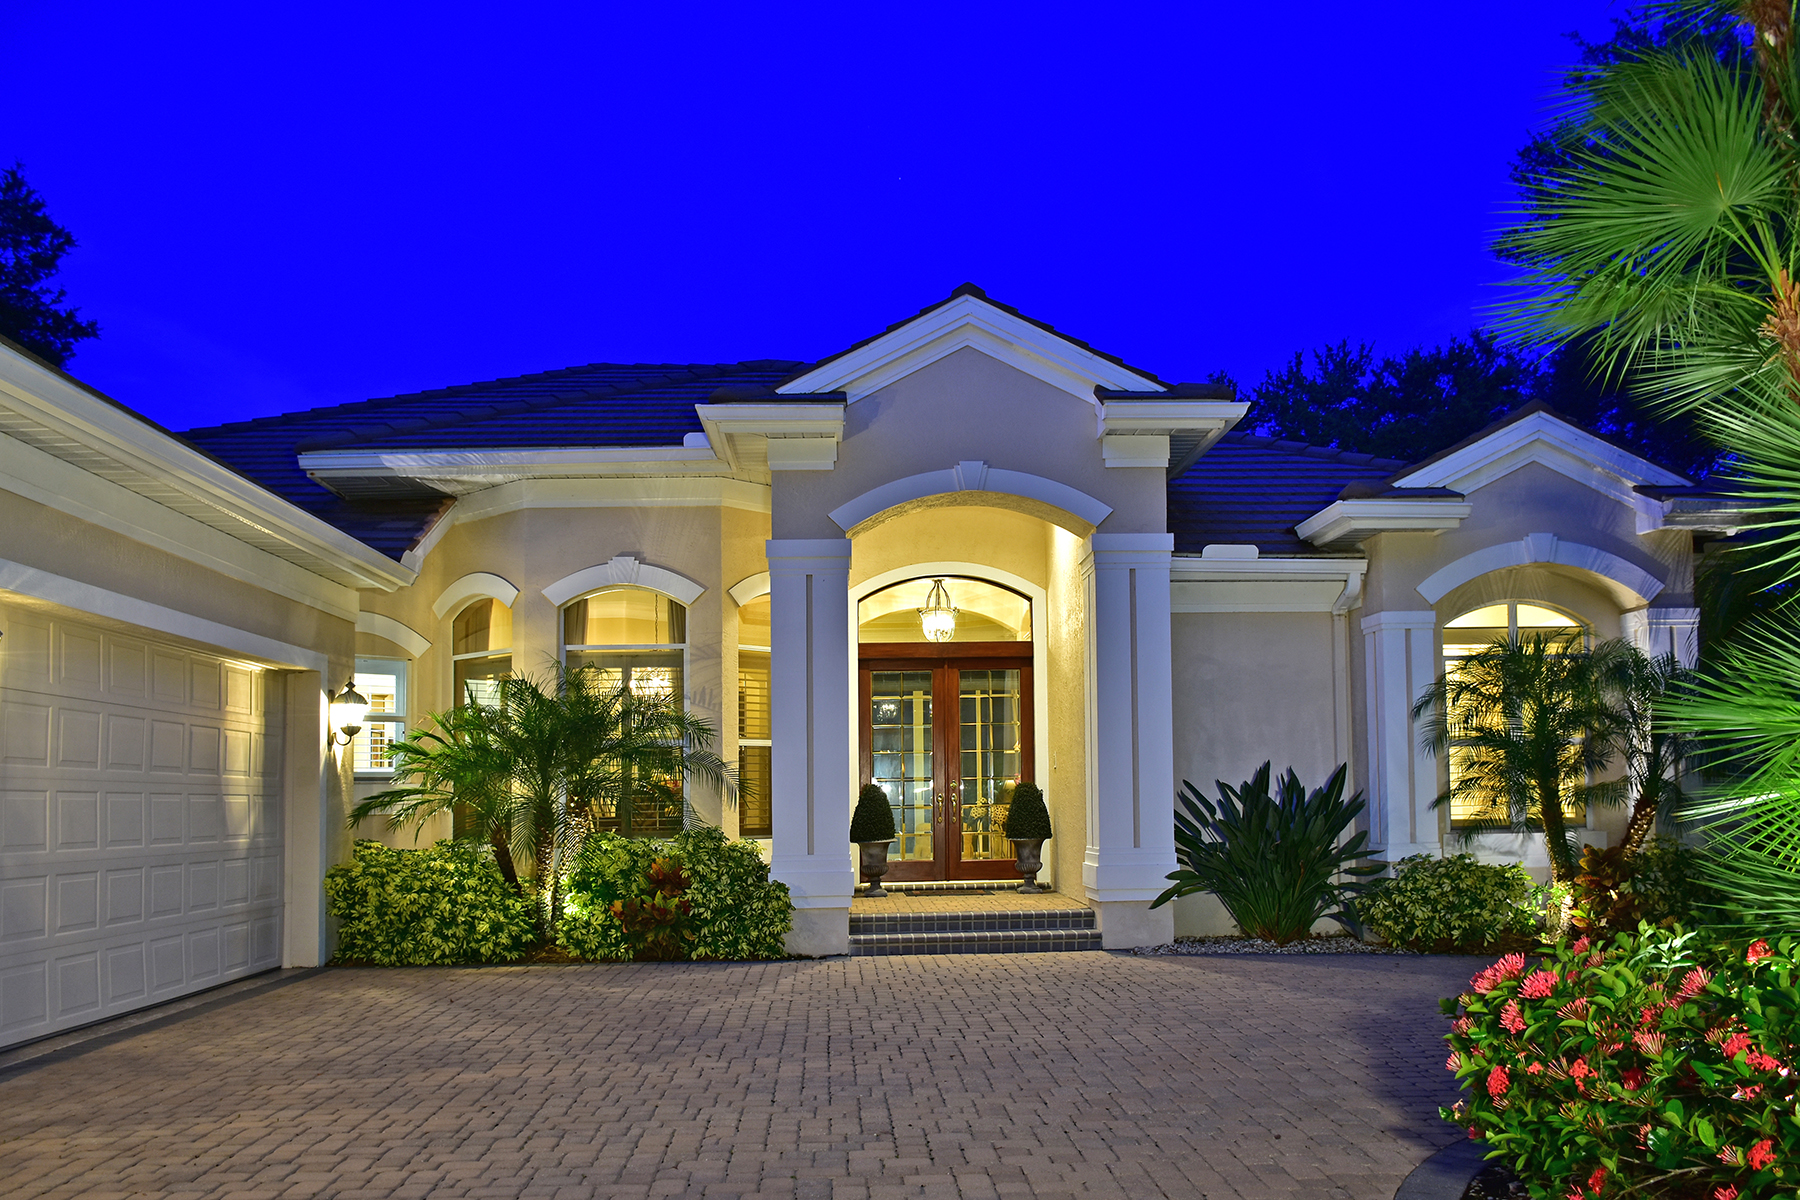 Single Family Home for Sale at UNIVERSITY PARK 7348 Barclay Ct University Park, Florida, 34201 United States